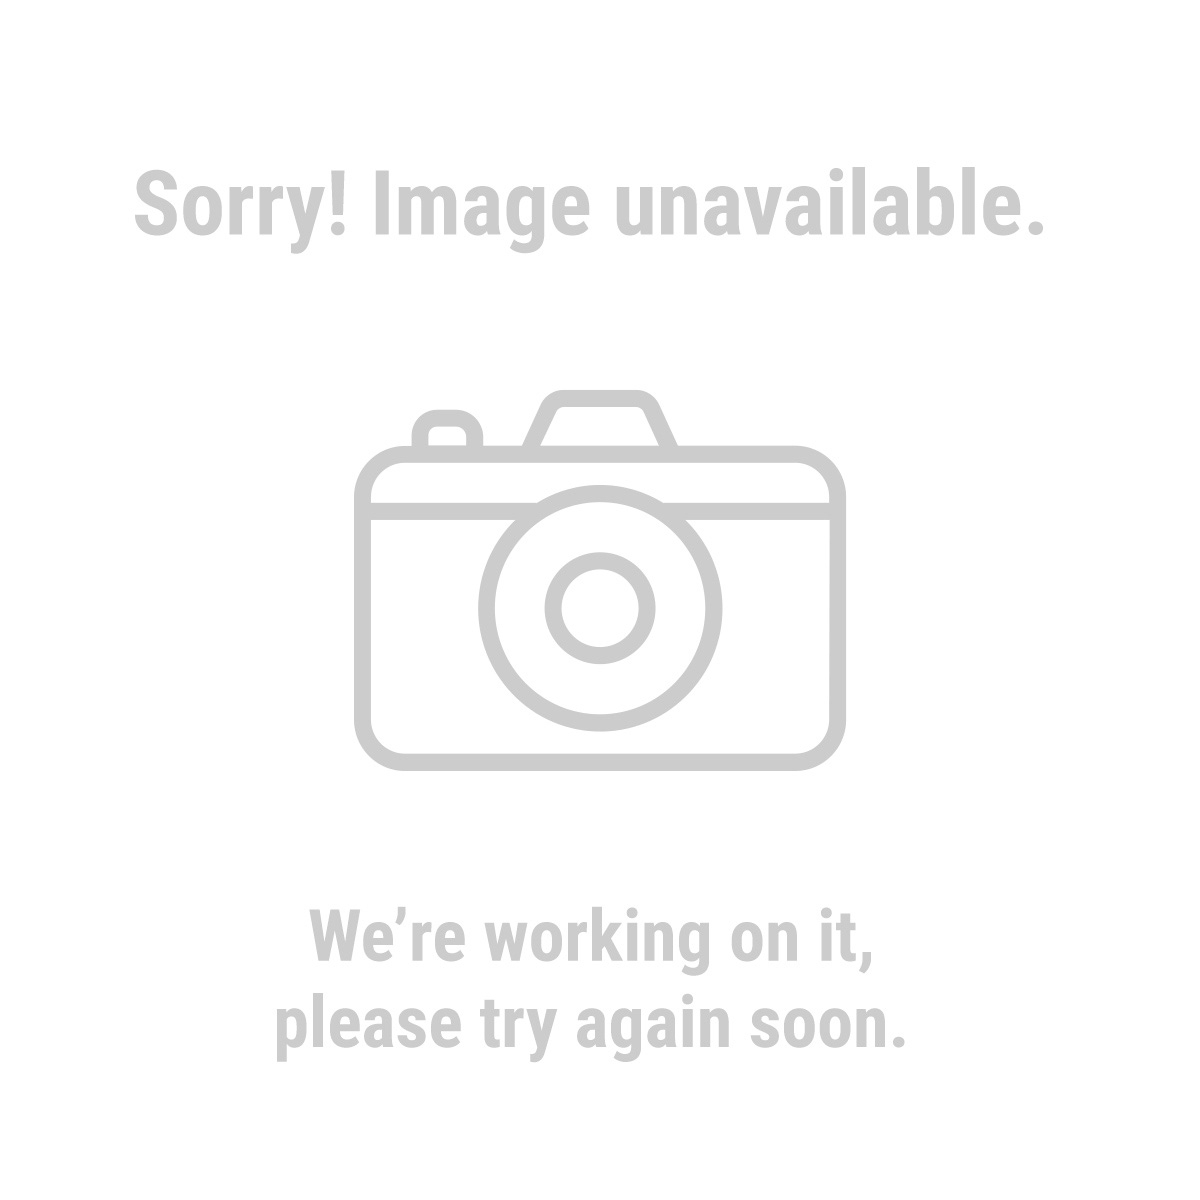 HFT 42367 Super Glue, 3 Pack